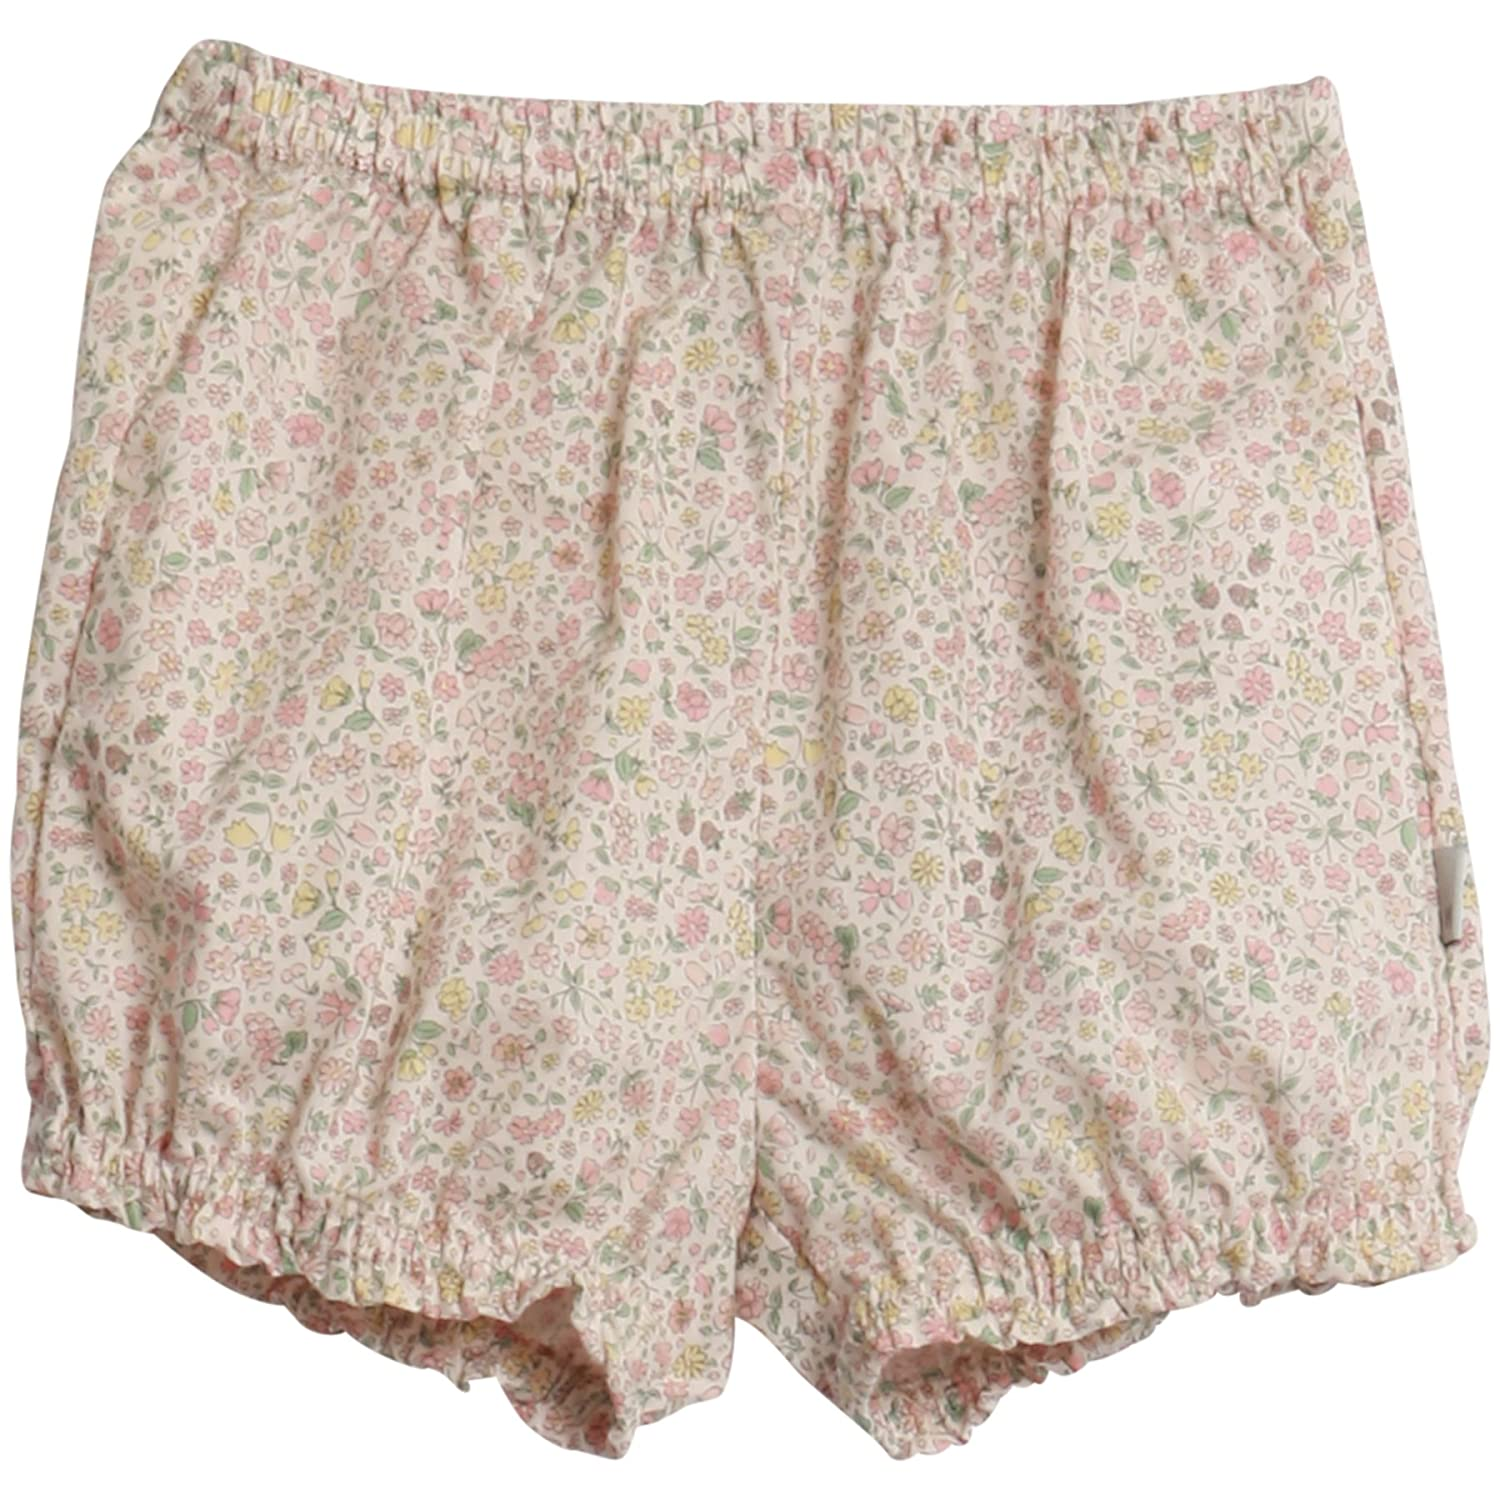 Wheat Baby Girls' Nappy Pants Sally Shorts Pink (Baby Rose 2022) 74 cm 5042-244